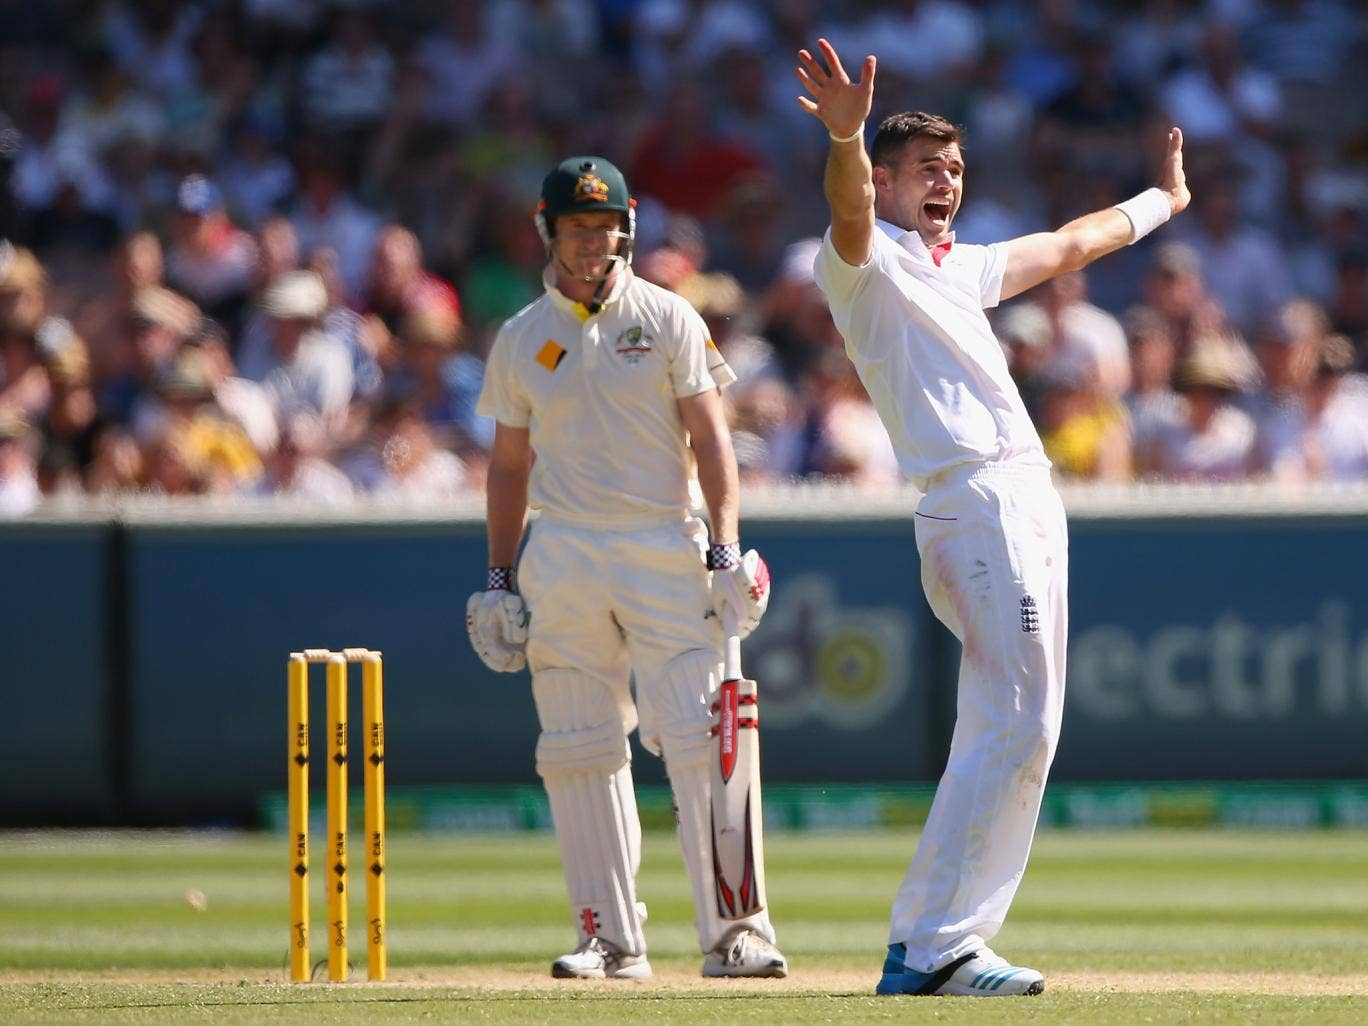 James Anderson appeals for the wicket of George Bailey, who went for a duck in the first innings of the Fourth Test